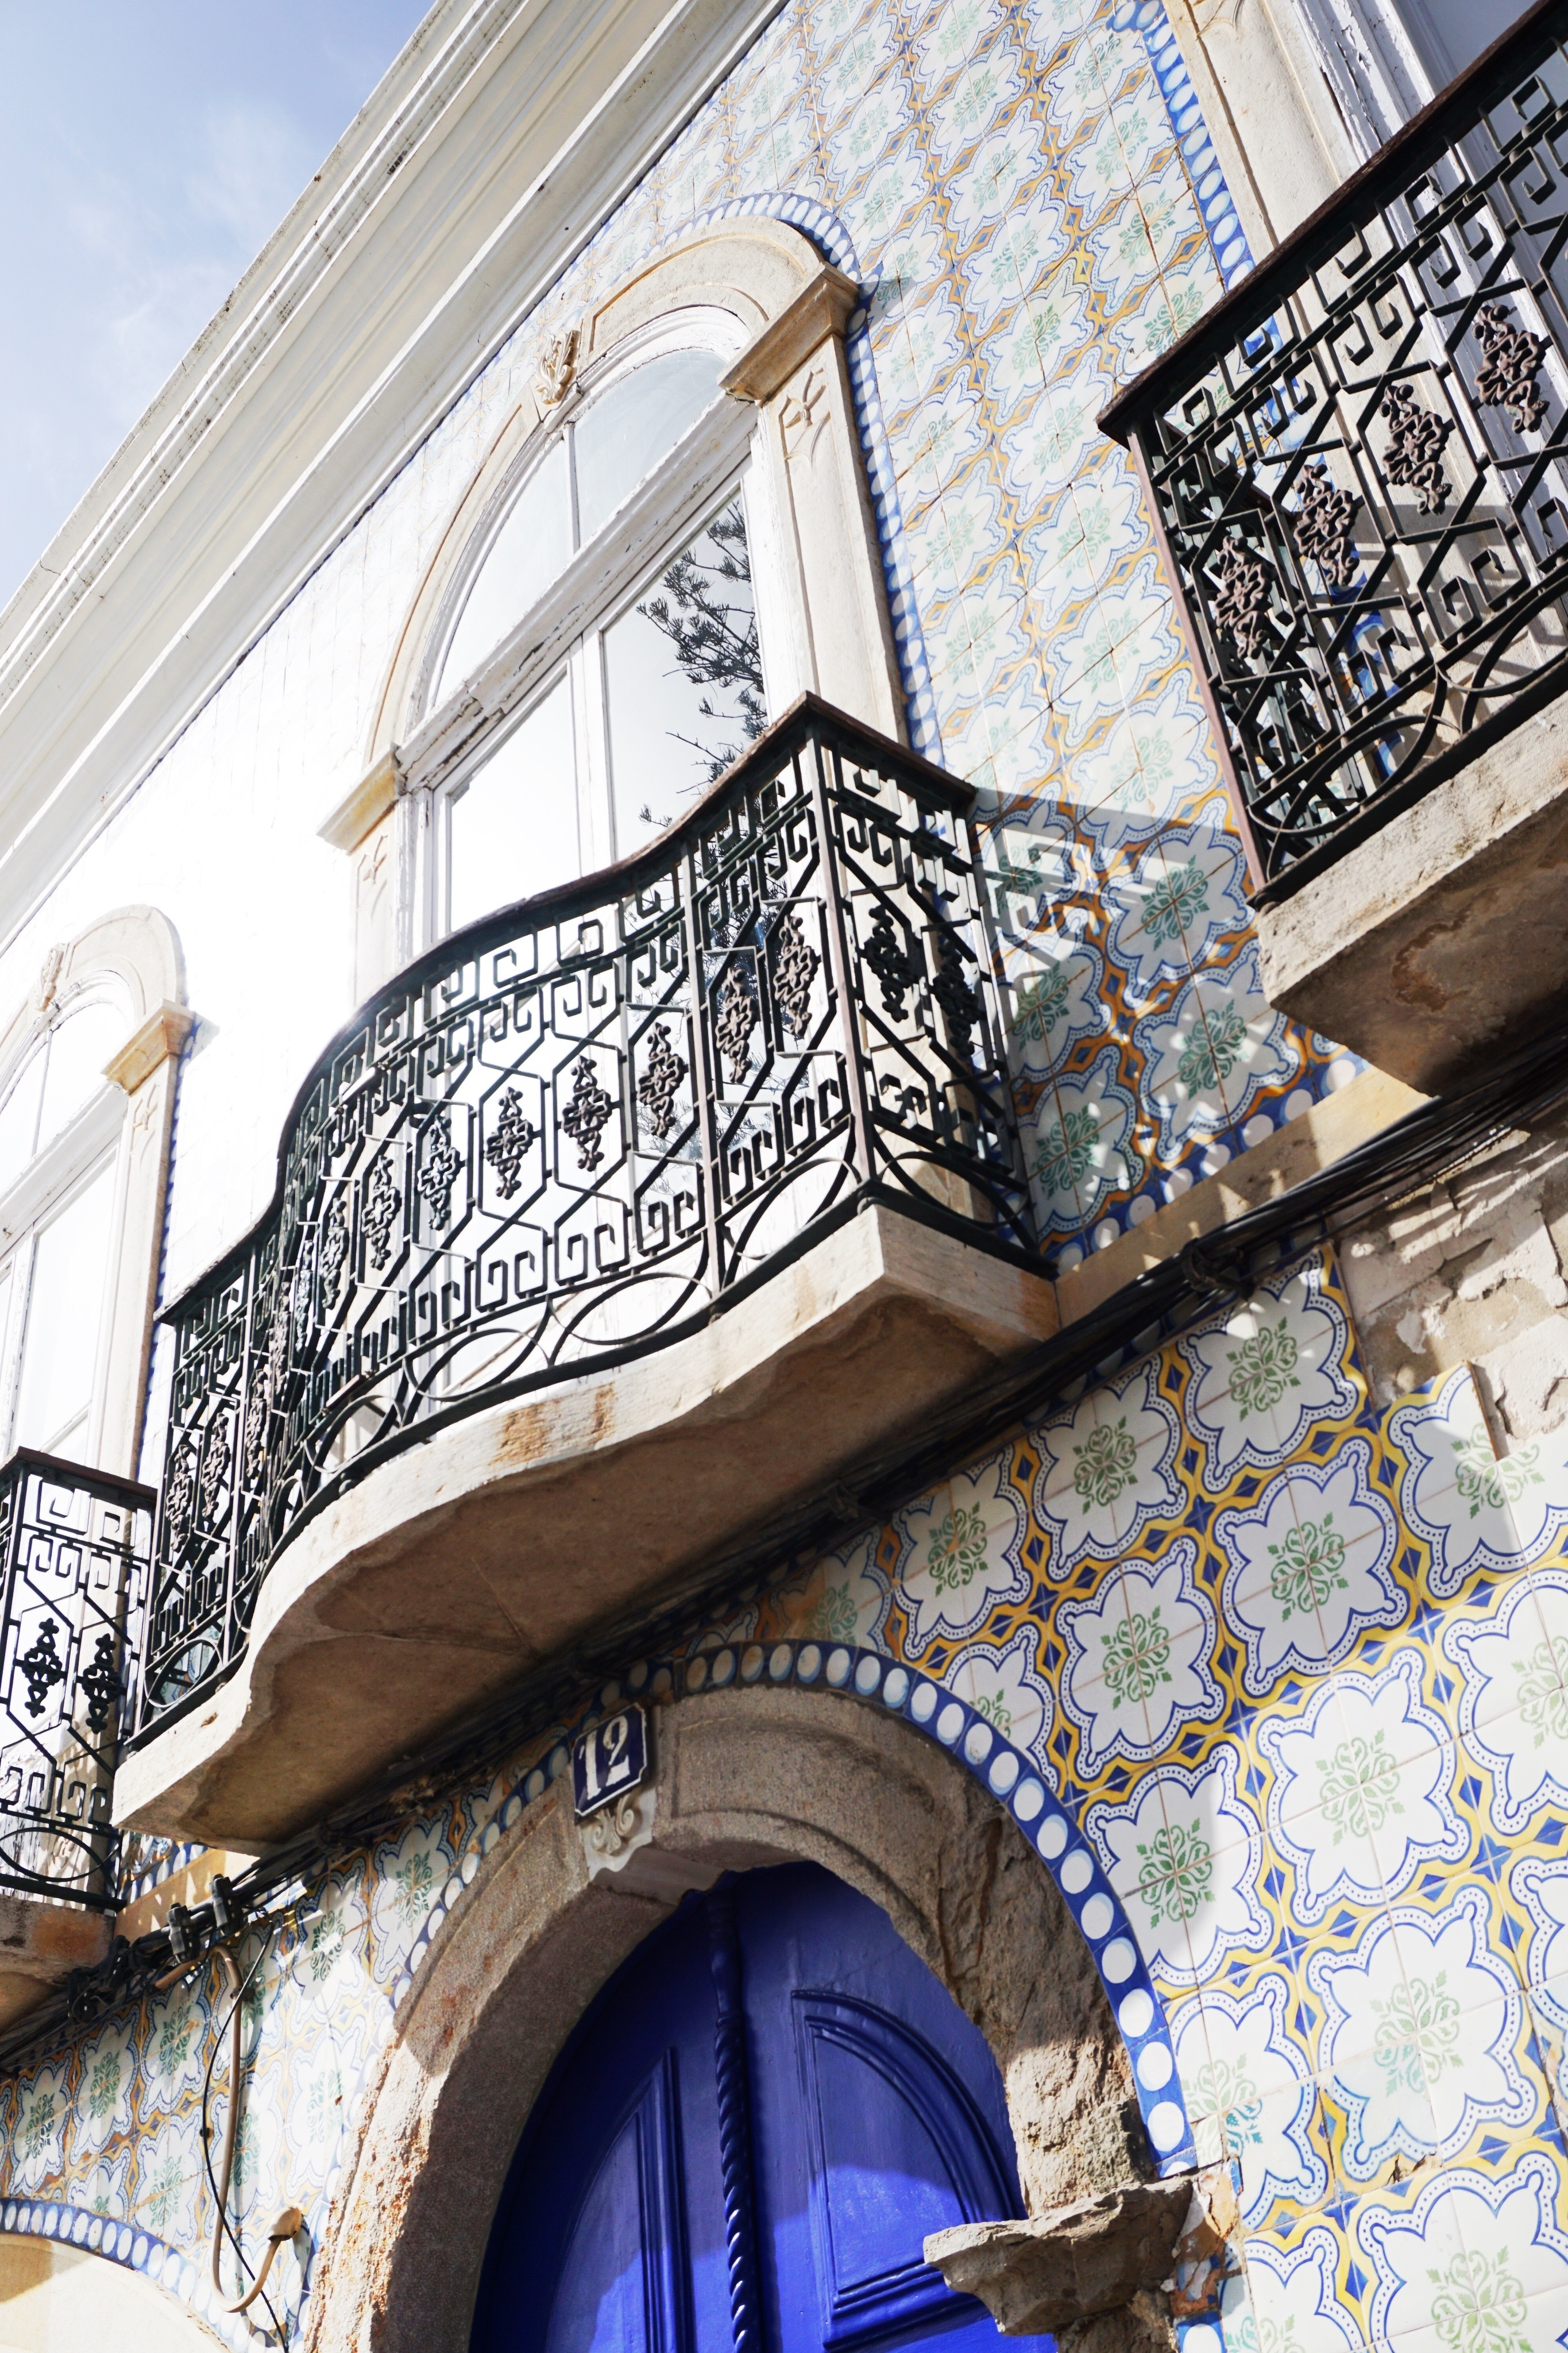 Beautiful tiled house in Tavira, Portugal.